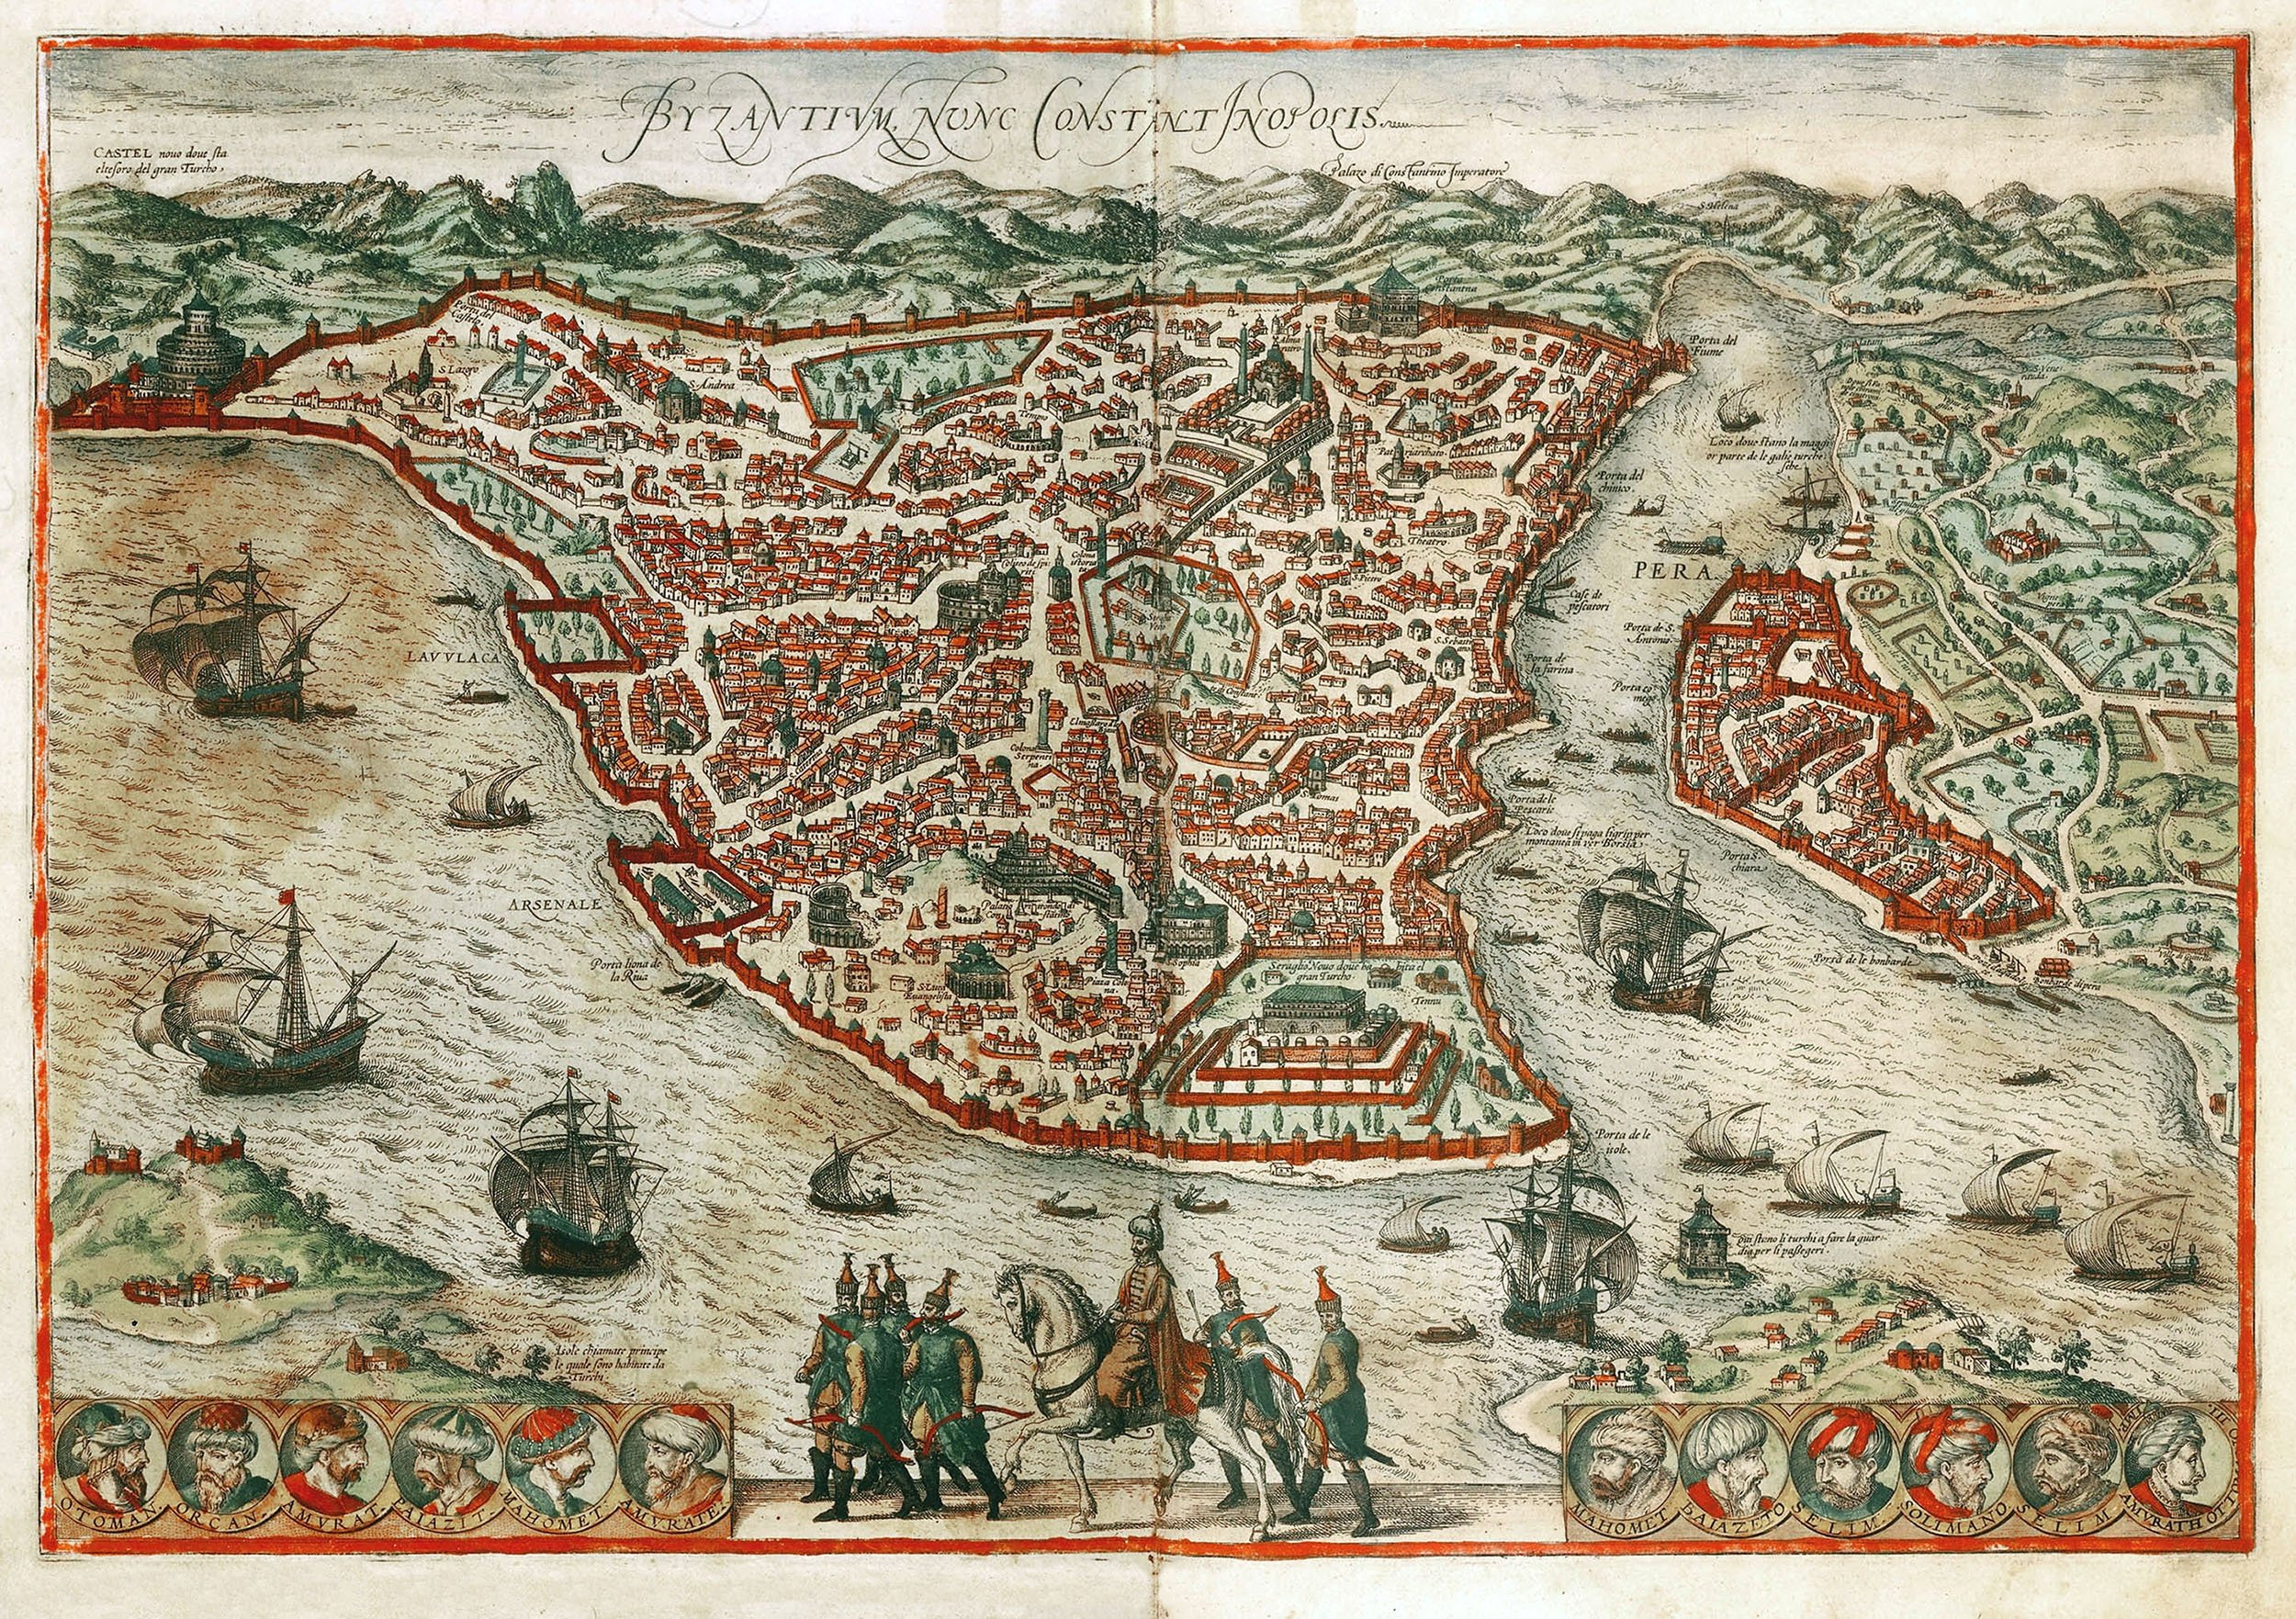 A map of old Istanbul, contained within the great walls of Constantinople. On the right is the smaller fort of Pera, on the other side of the Golden Horn estuary. The map is from the book 'Civitates orbis terrarum,' published in 1617. (Getty Images)